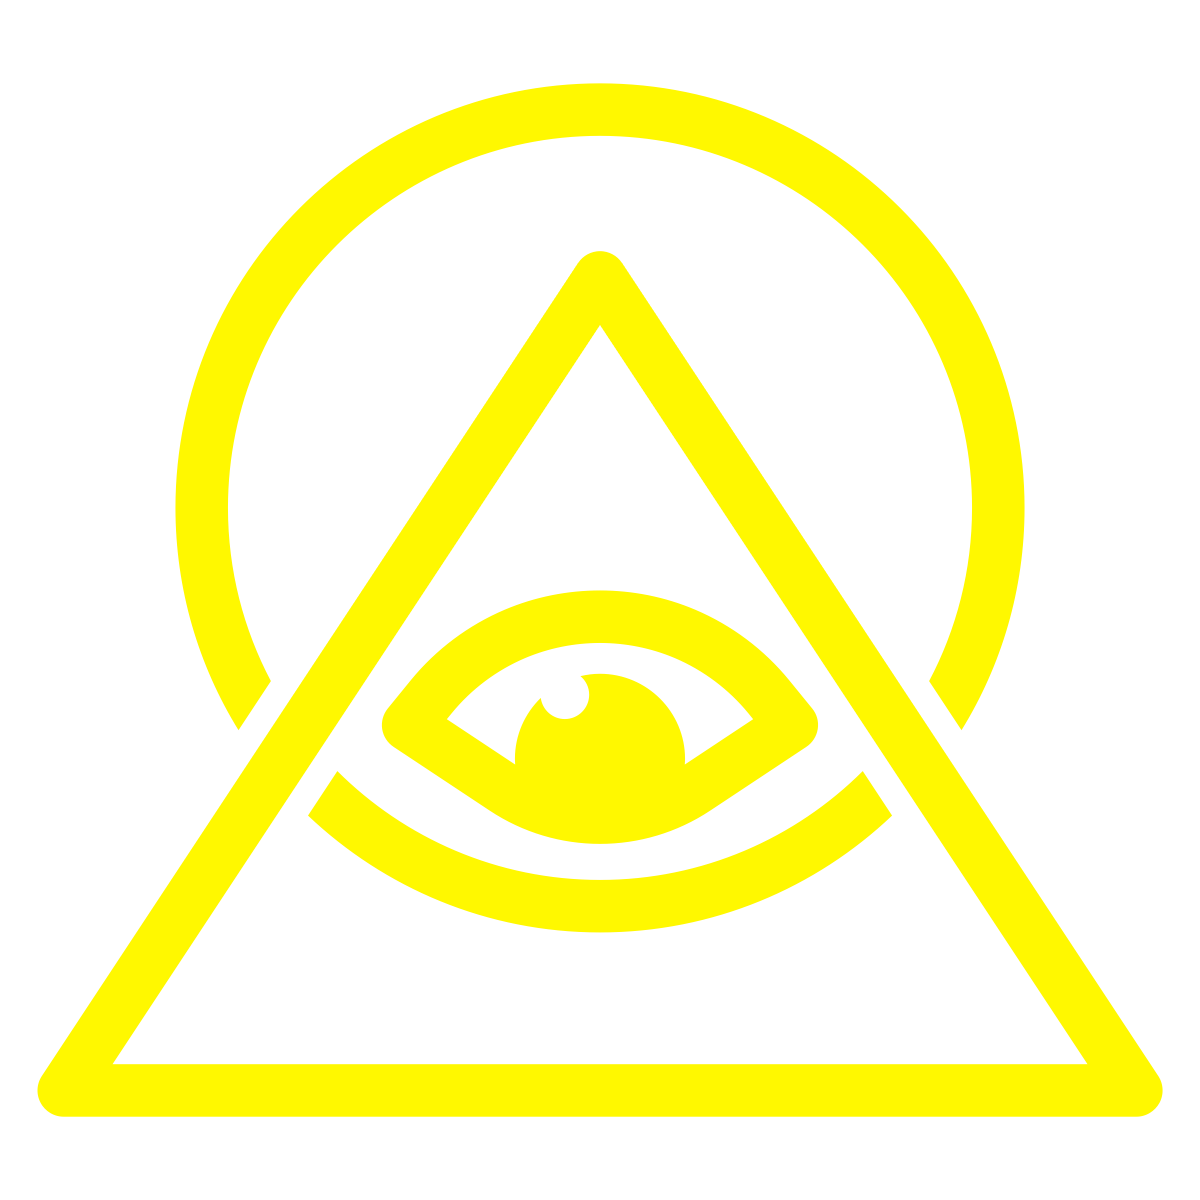 np_all-seeing-eye_1473231_FFFB00.png